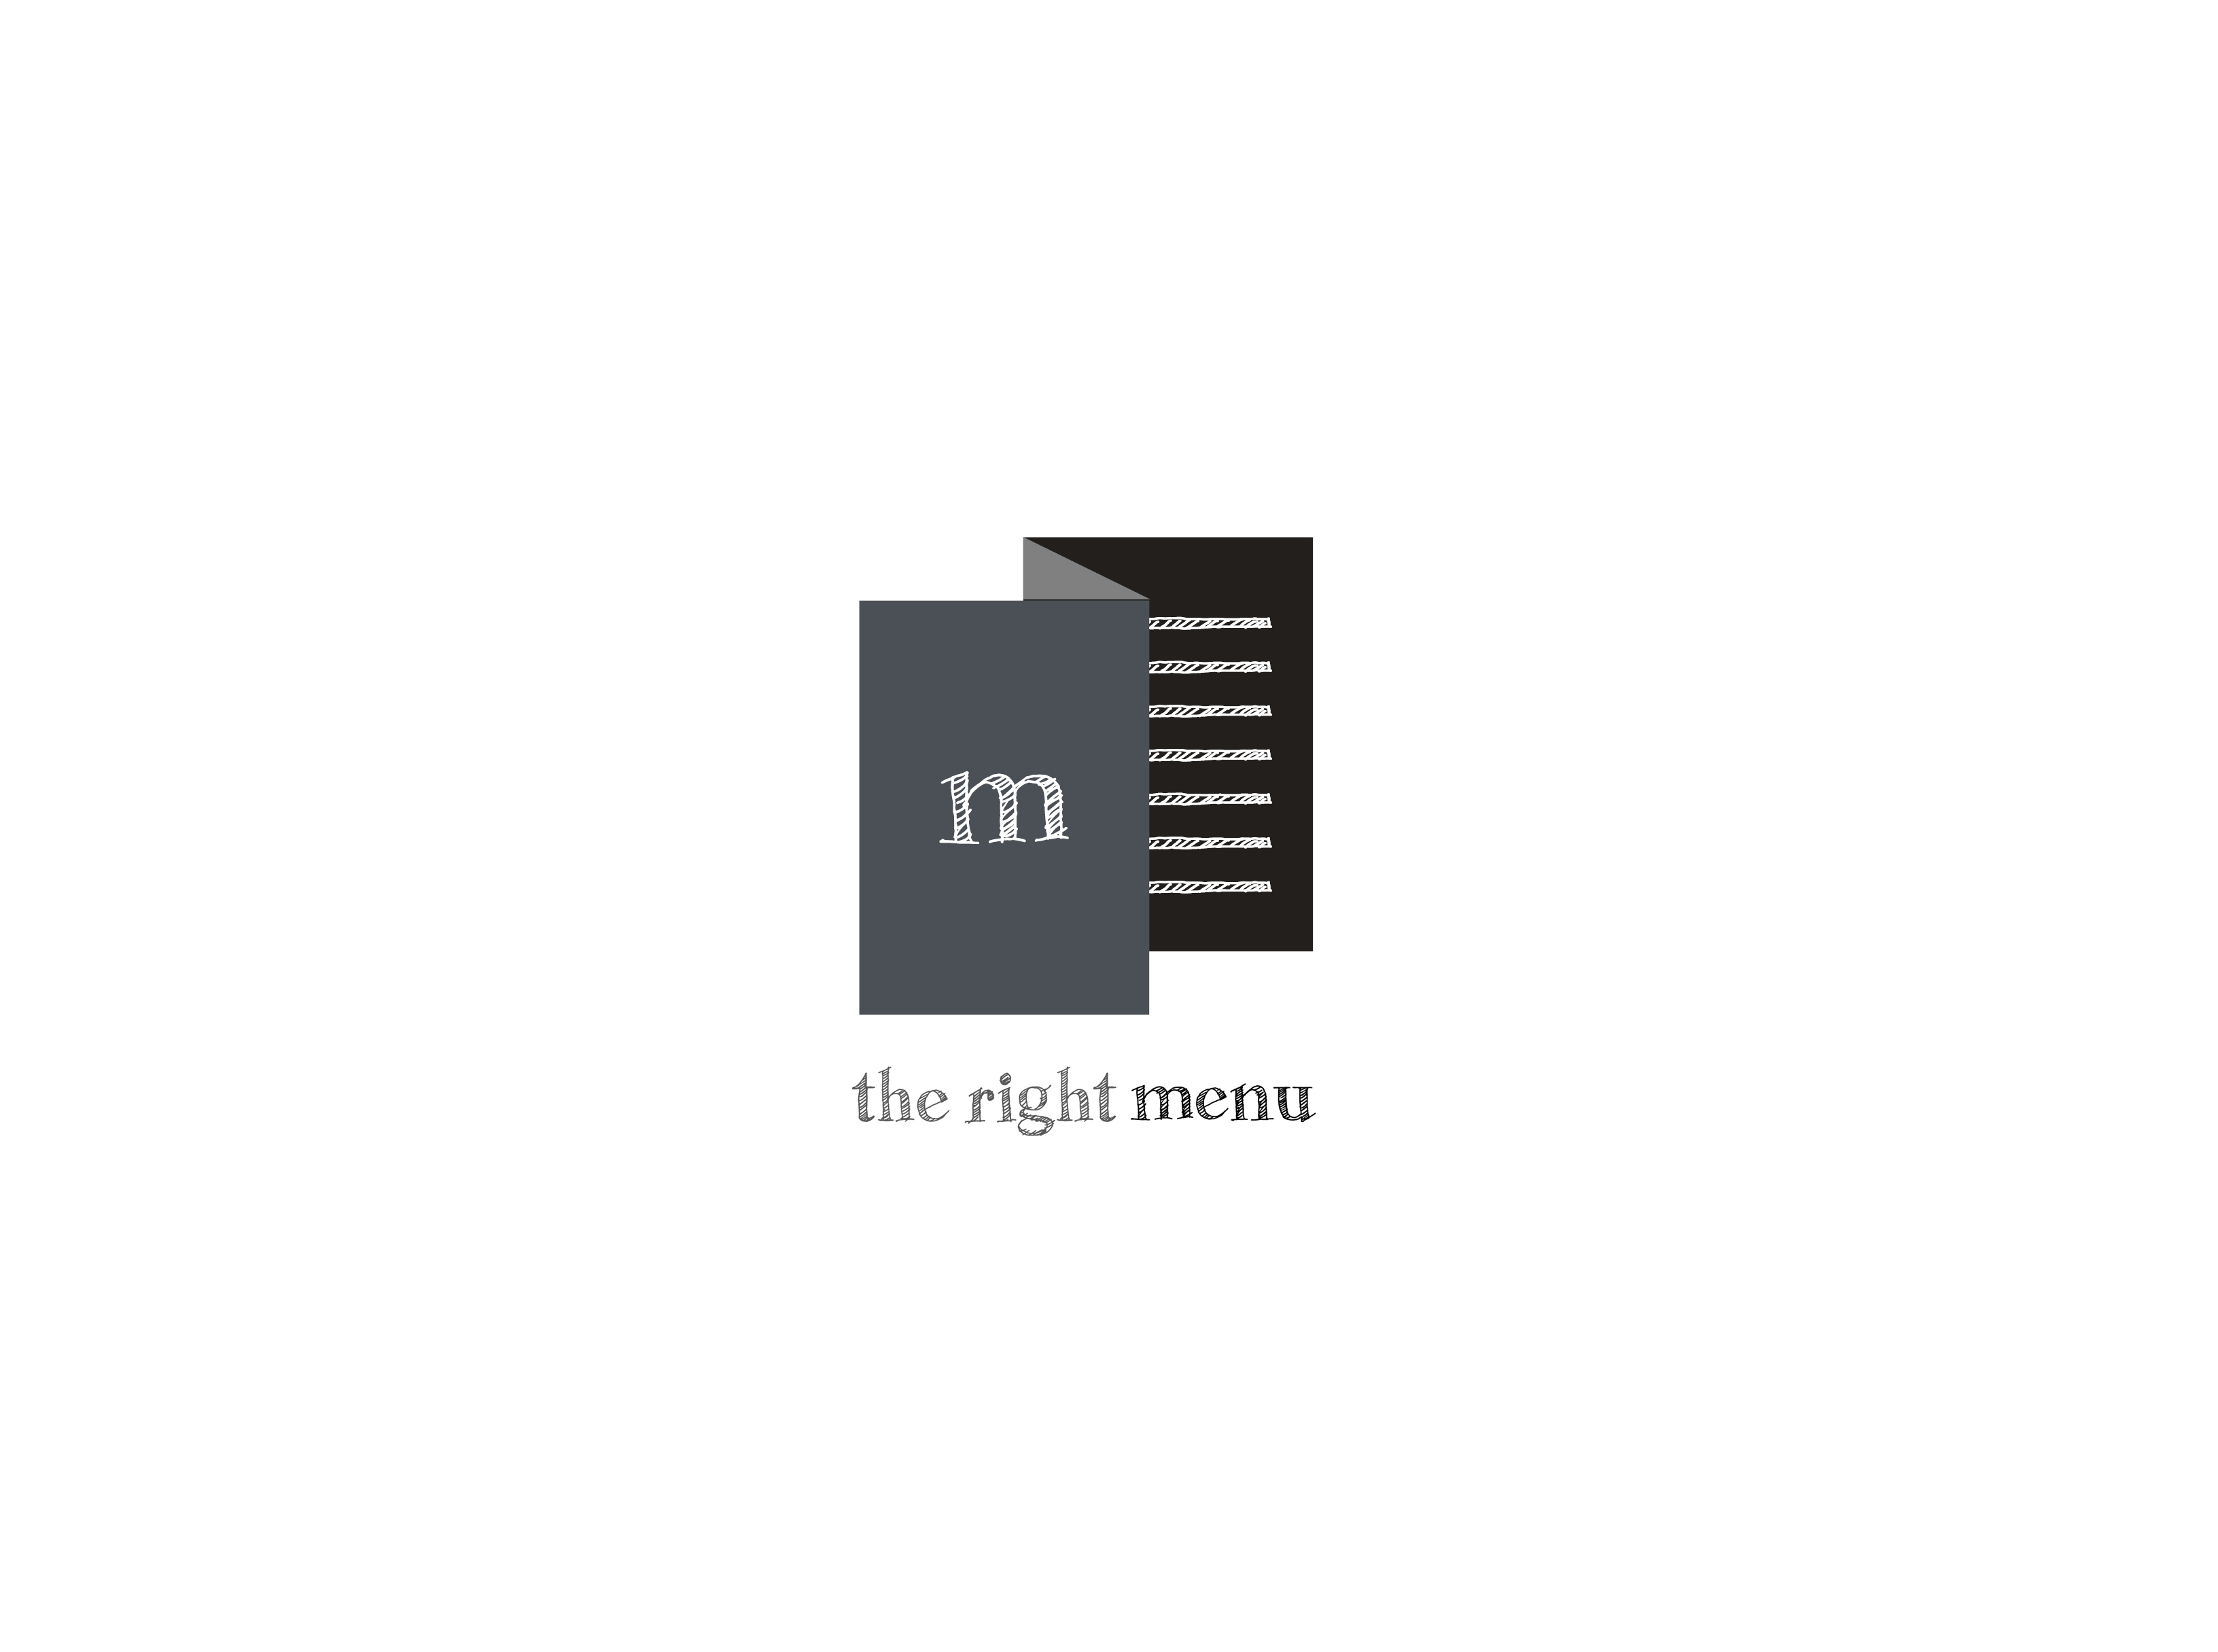 The right menu logo